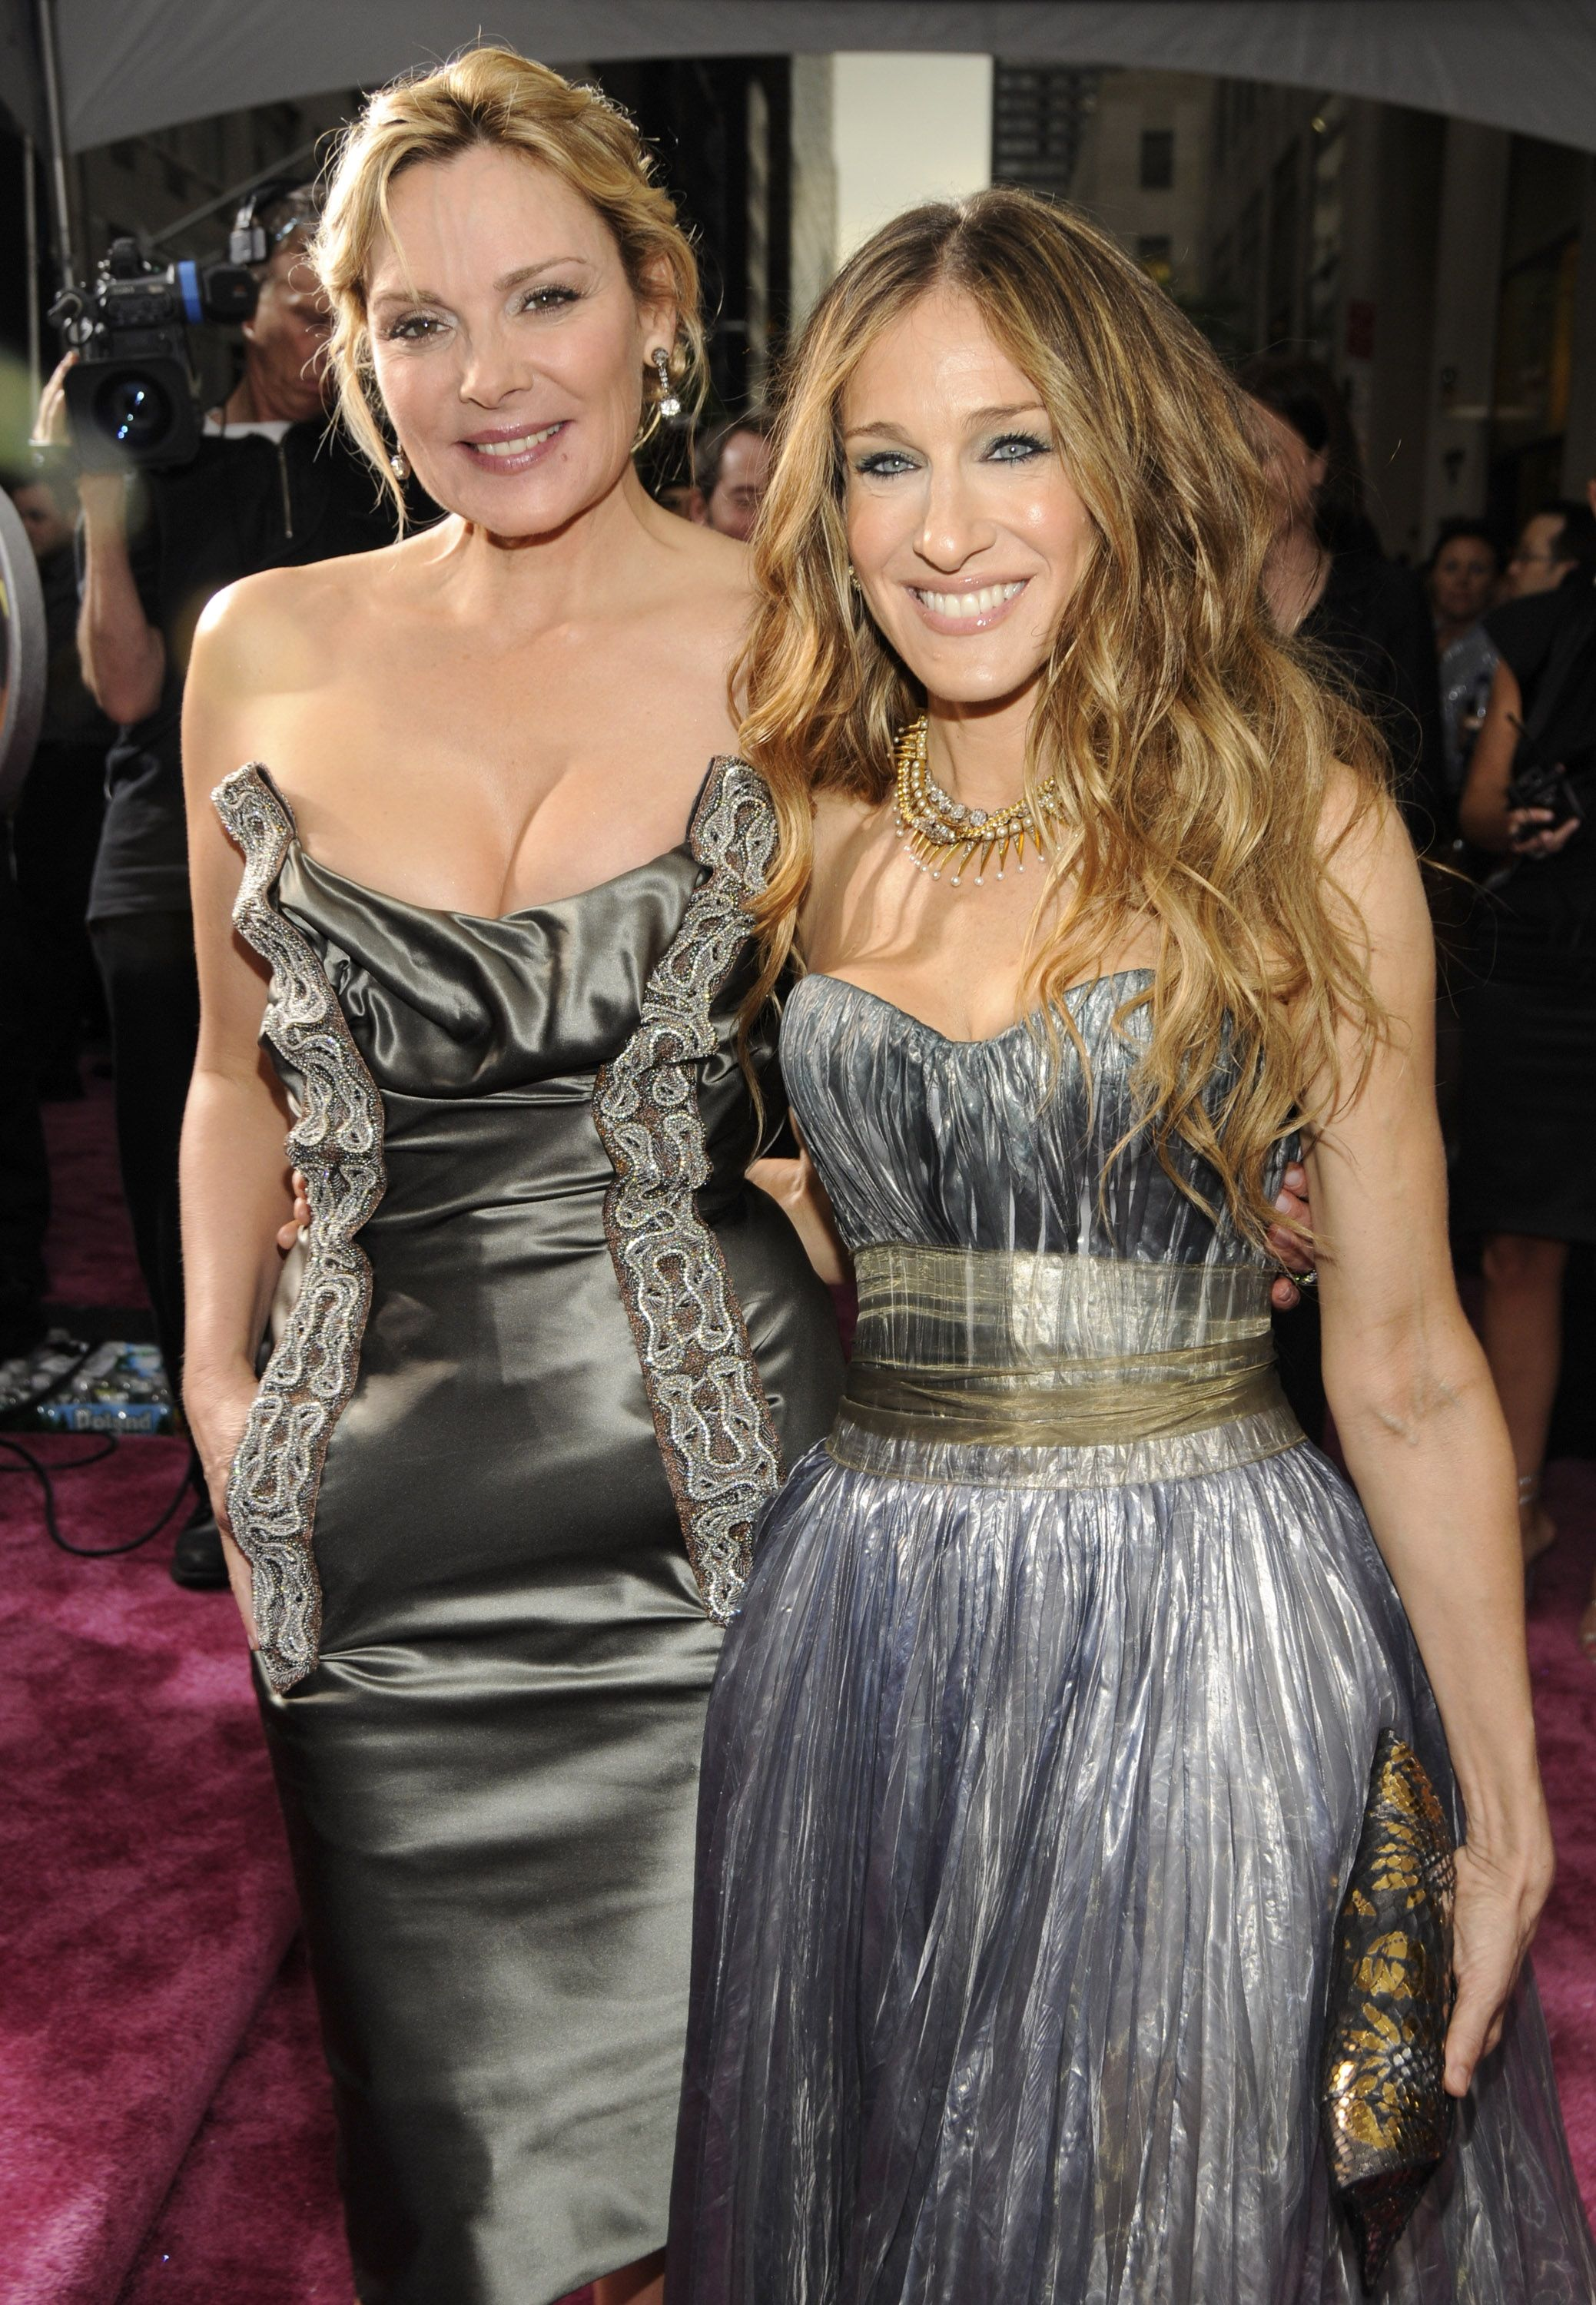 foto A Definitive Timeline of Sarah Jessica Parker and Kim Cattrall's Sex and the City Feud